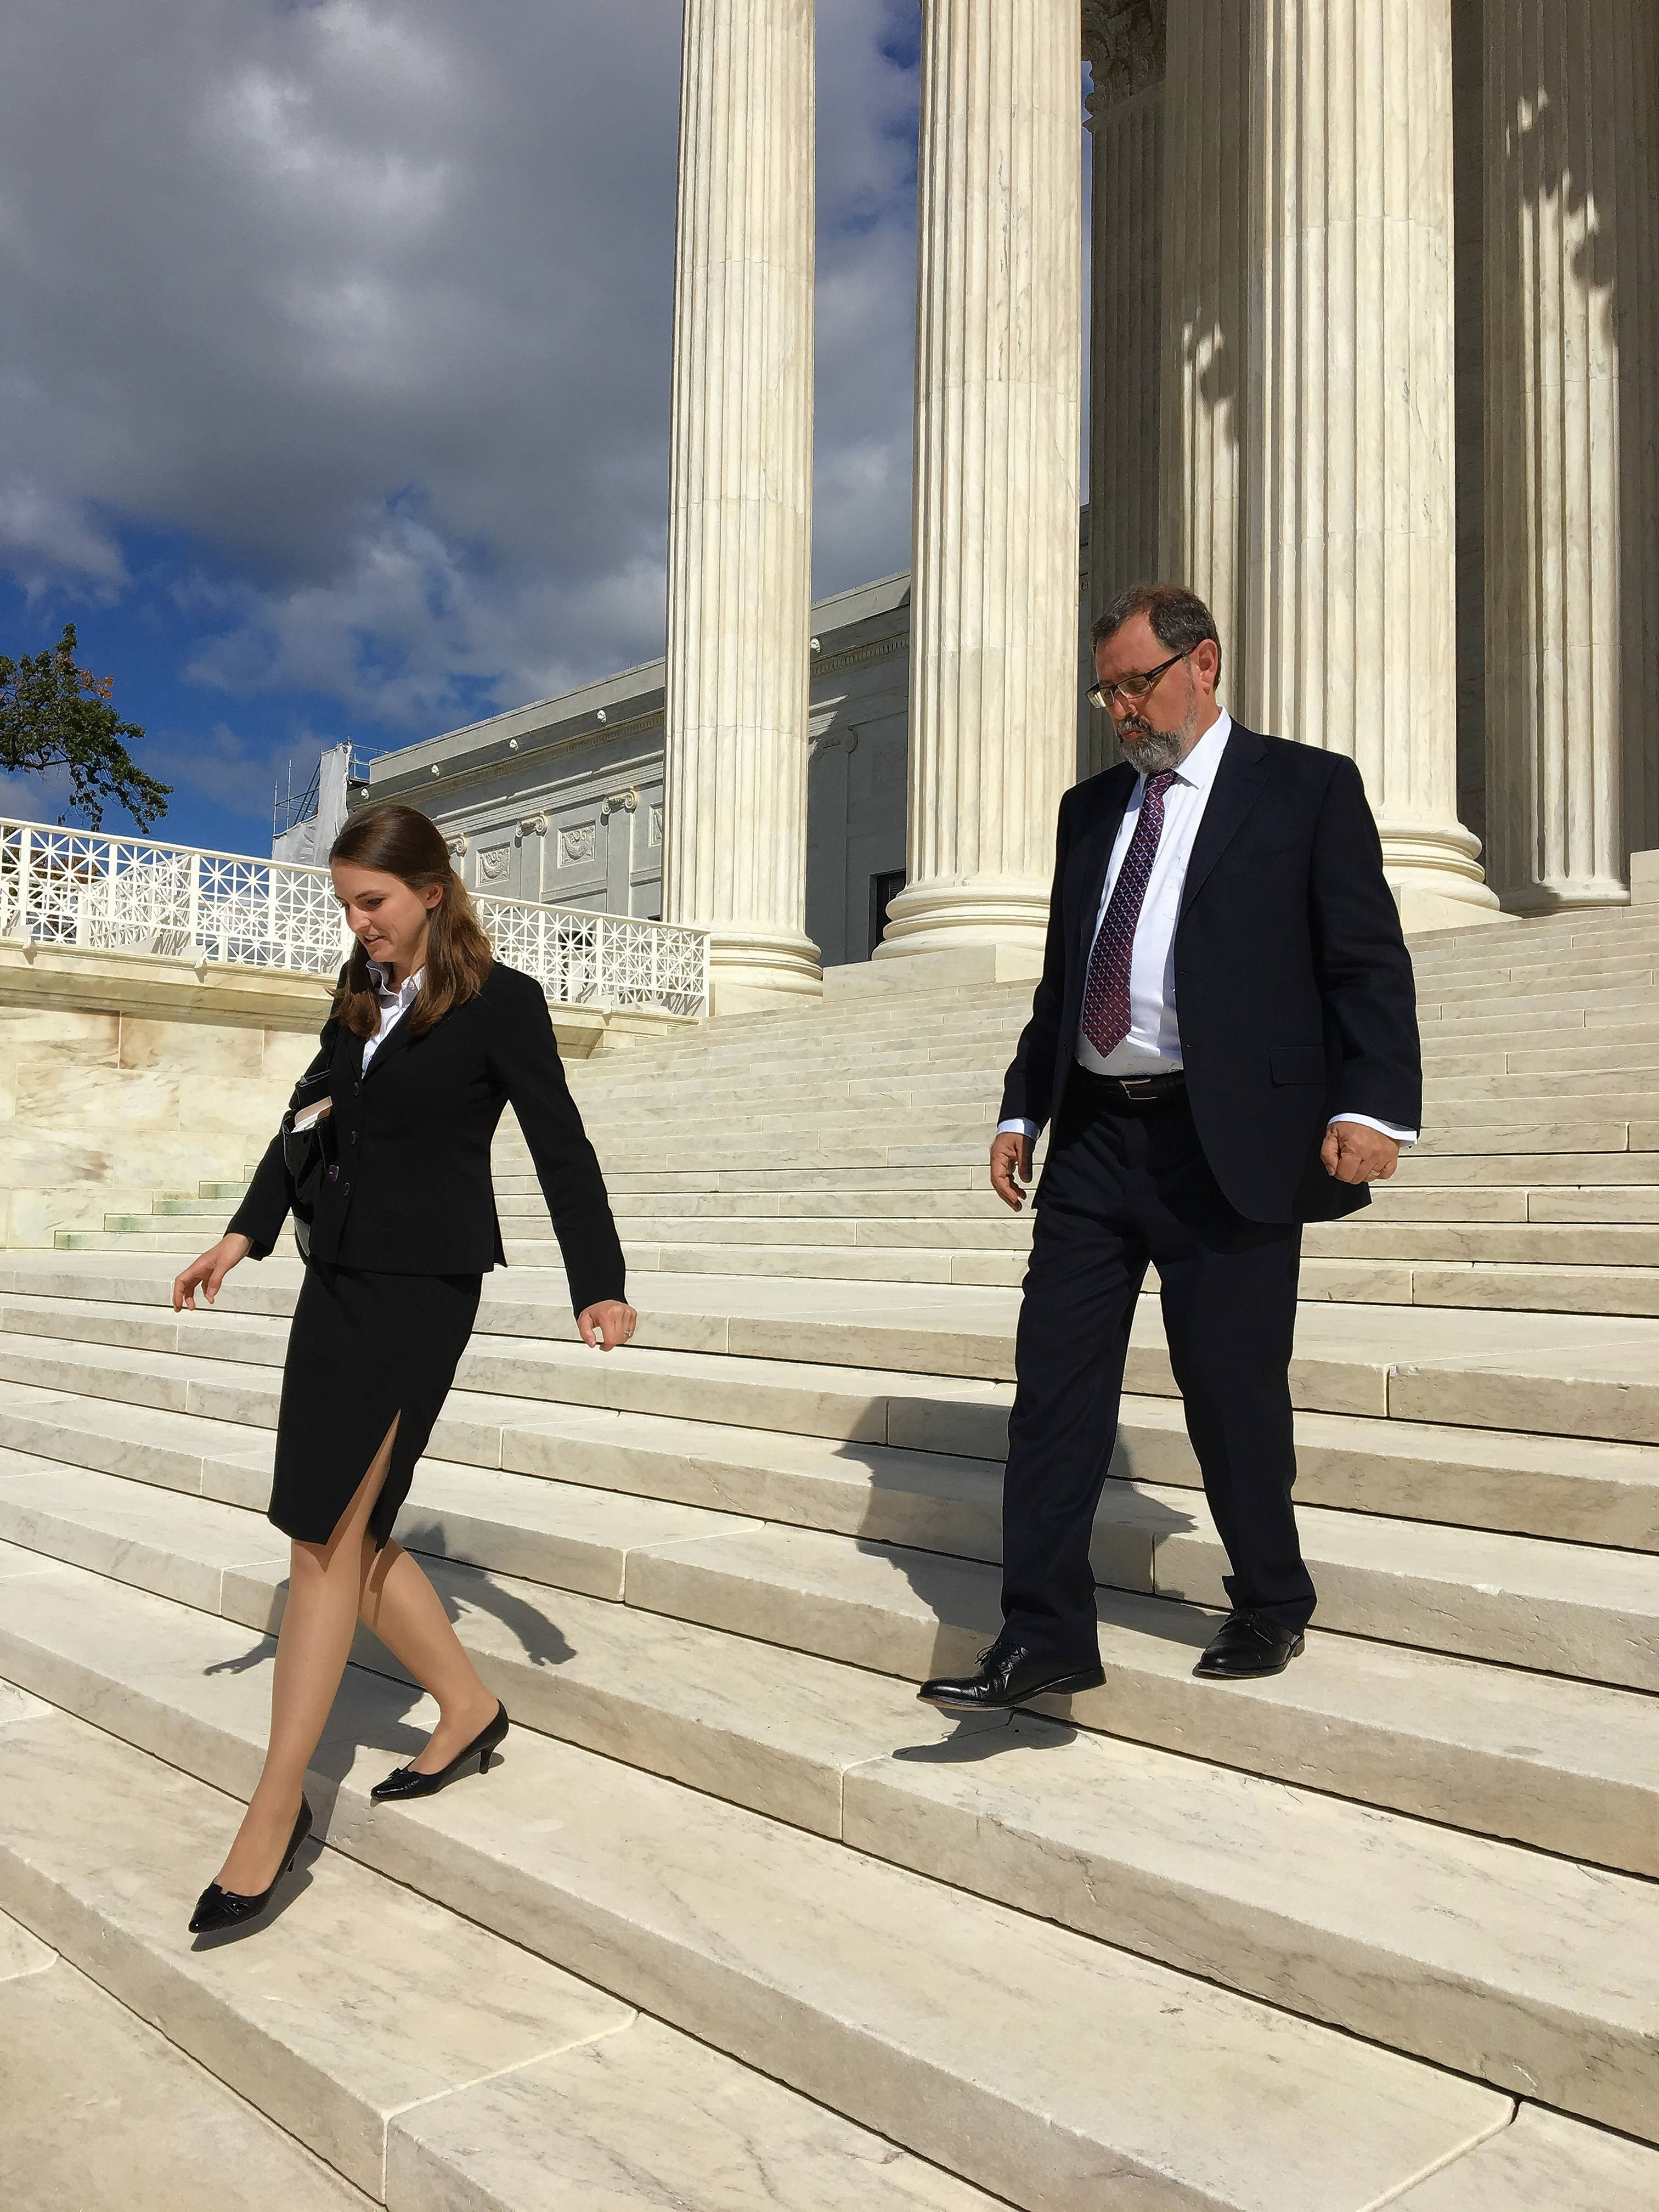 Arlington Heights attorney Stanley Eisenhammer, top, was victorious in a search and seizure case he argued before the U.S. Supreme Court. Associate attorney Pamela Simaga, bottom steps, assisted in the preparation.